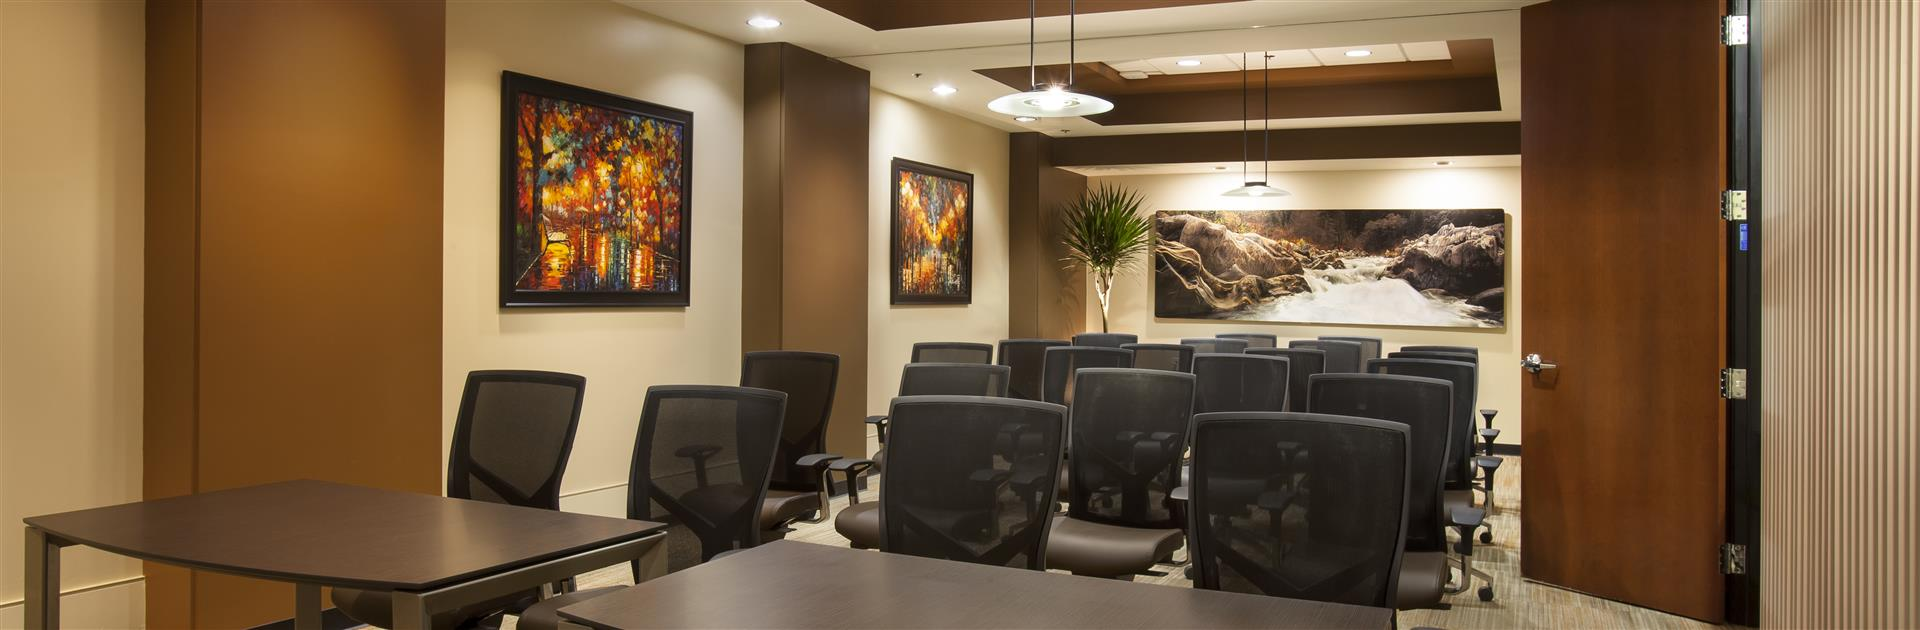 Business Central - Gold River - Seminar/Training Room